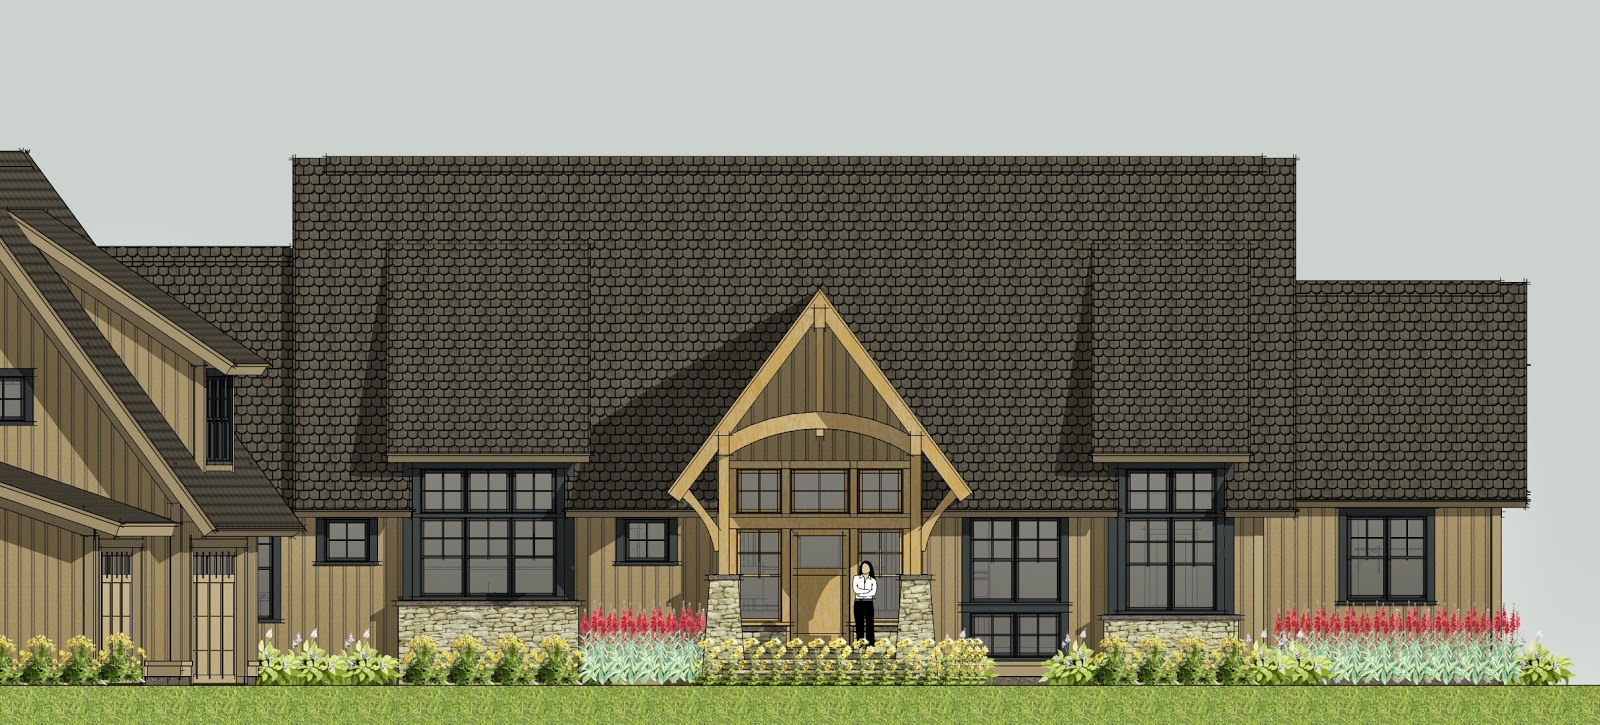 Simply Elegant Home Designs Blog: Home Plans from Big to Modest on